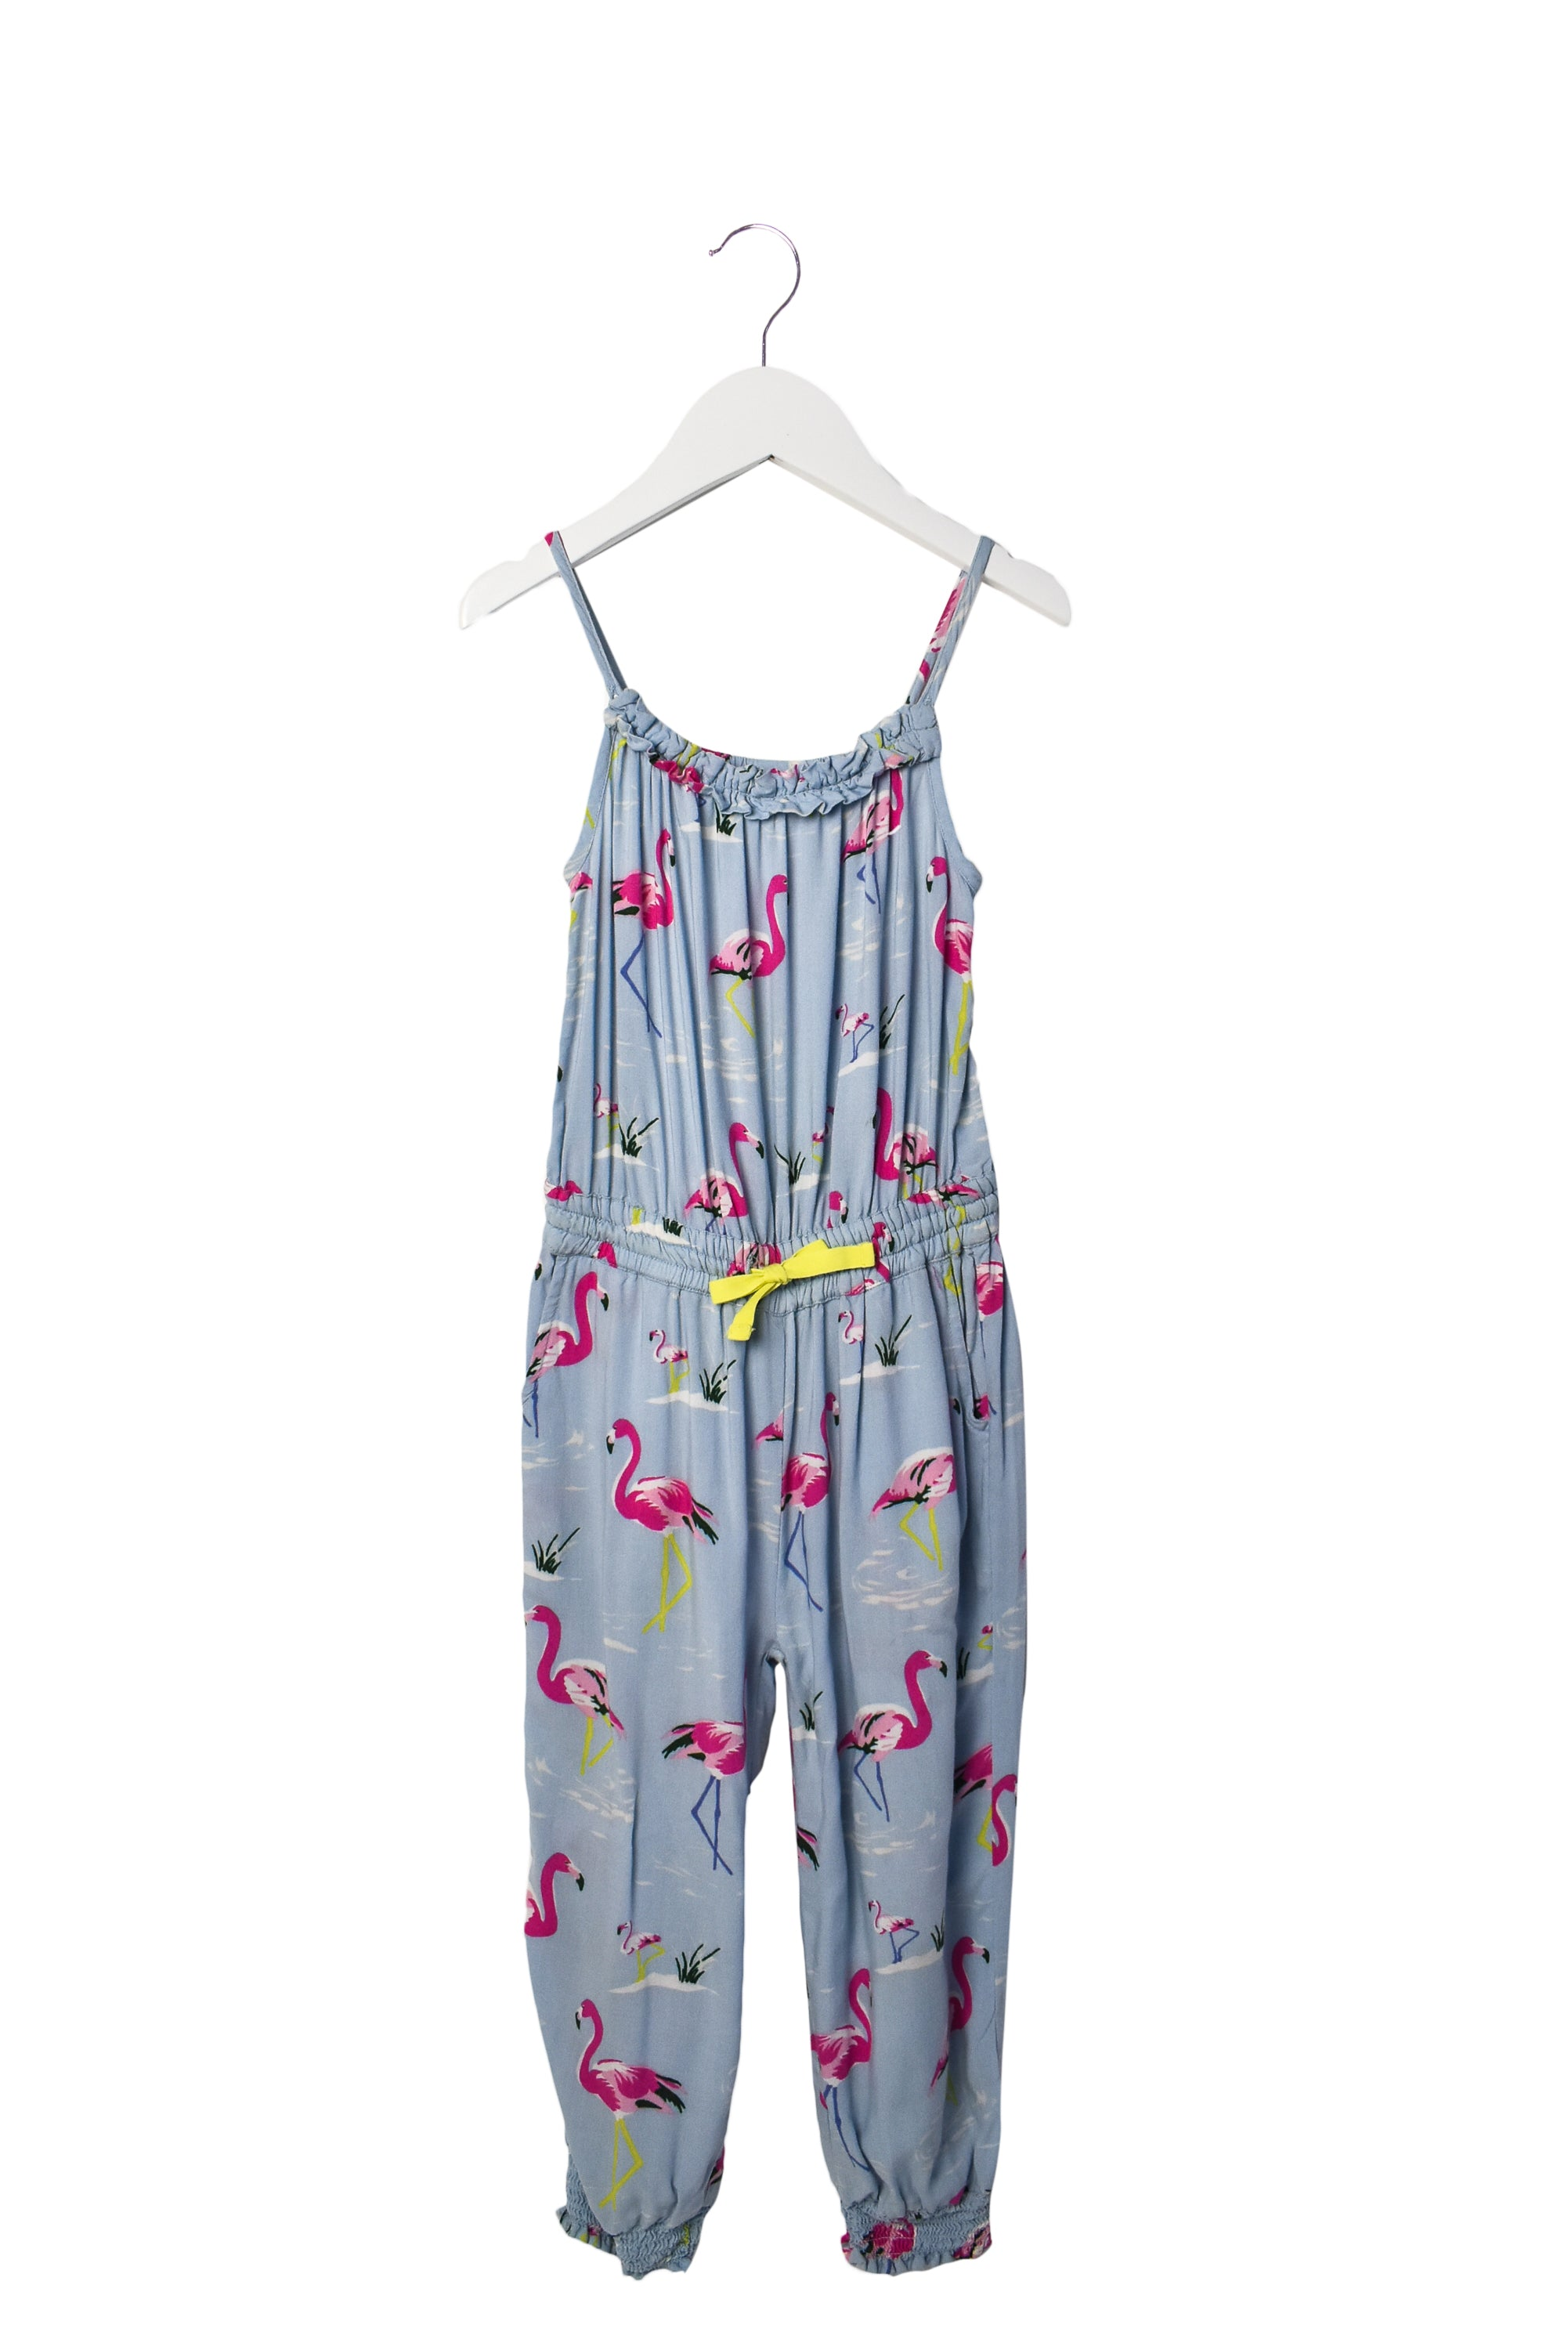 10006853 Boden Kids~Jumpsuit 3-4T at Retykle